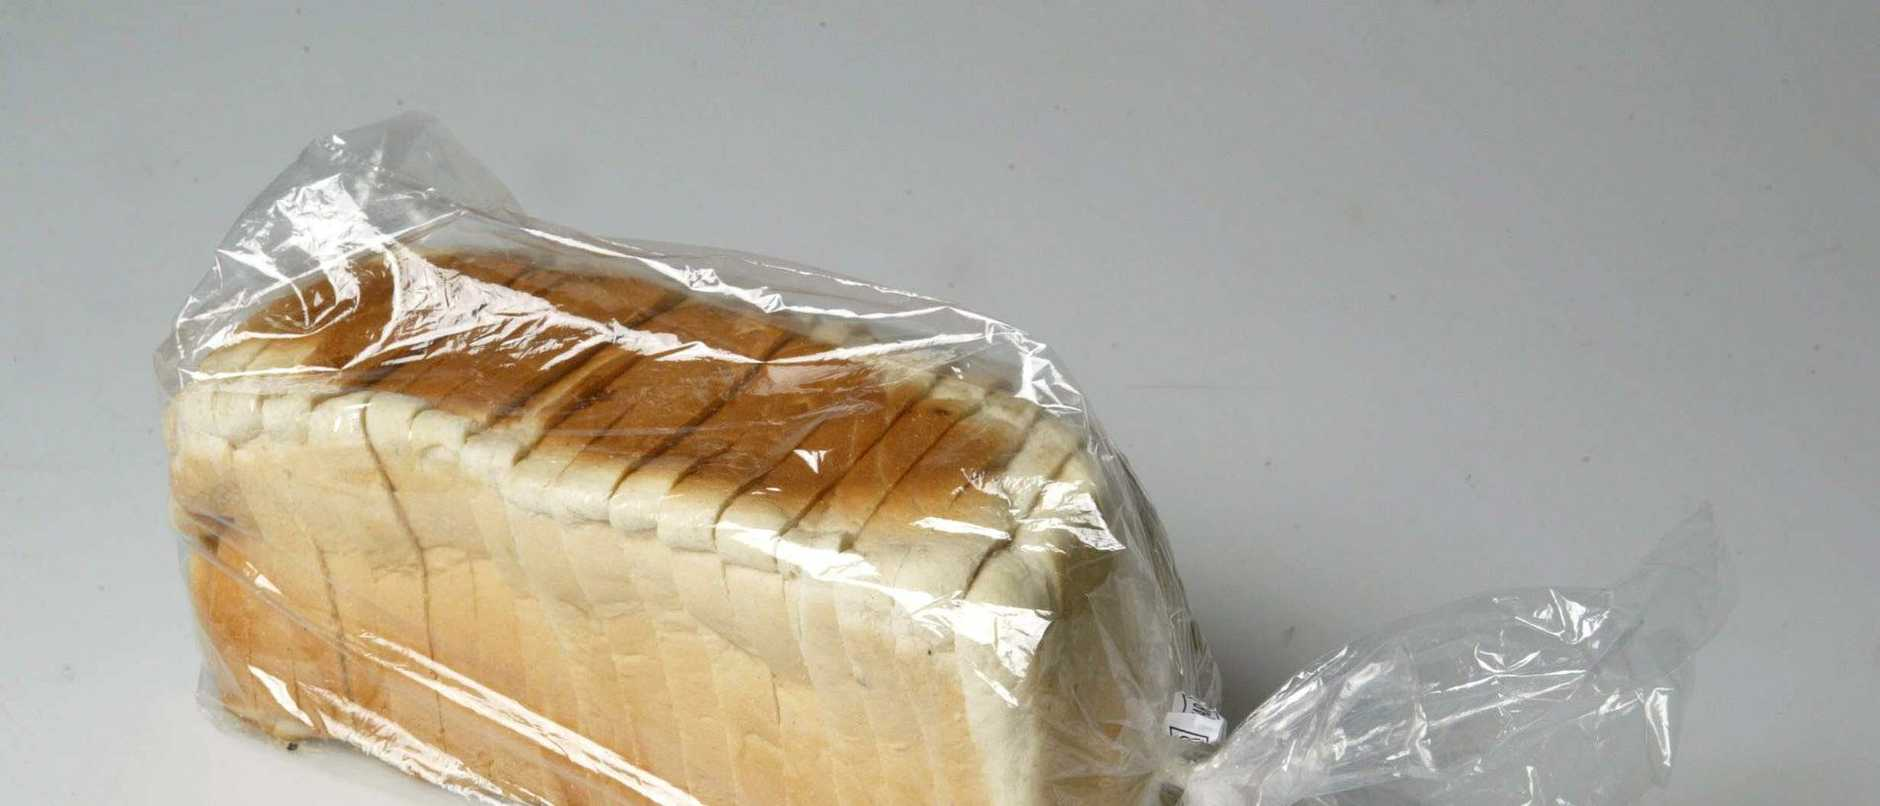 Generic pic of a loaf of sliced white bread.